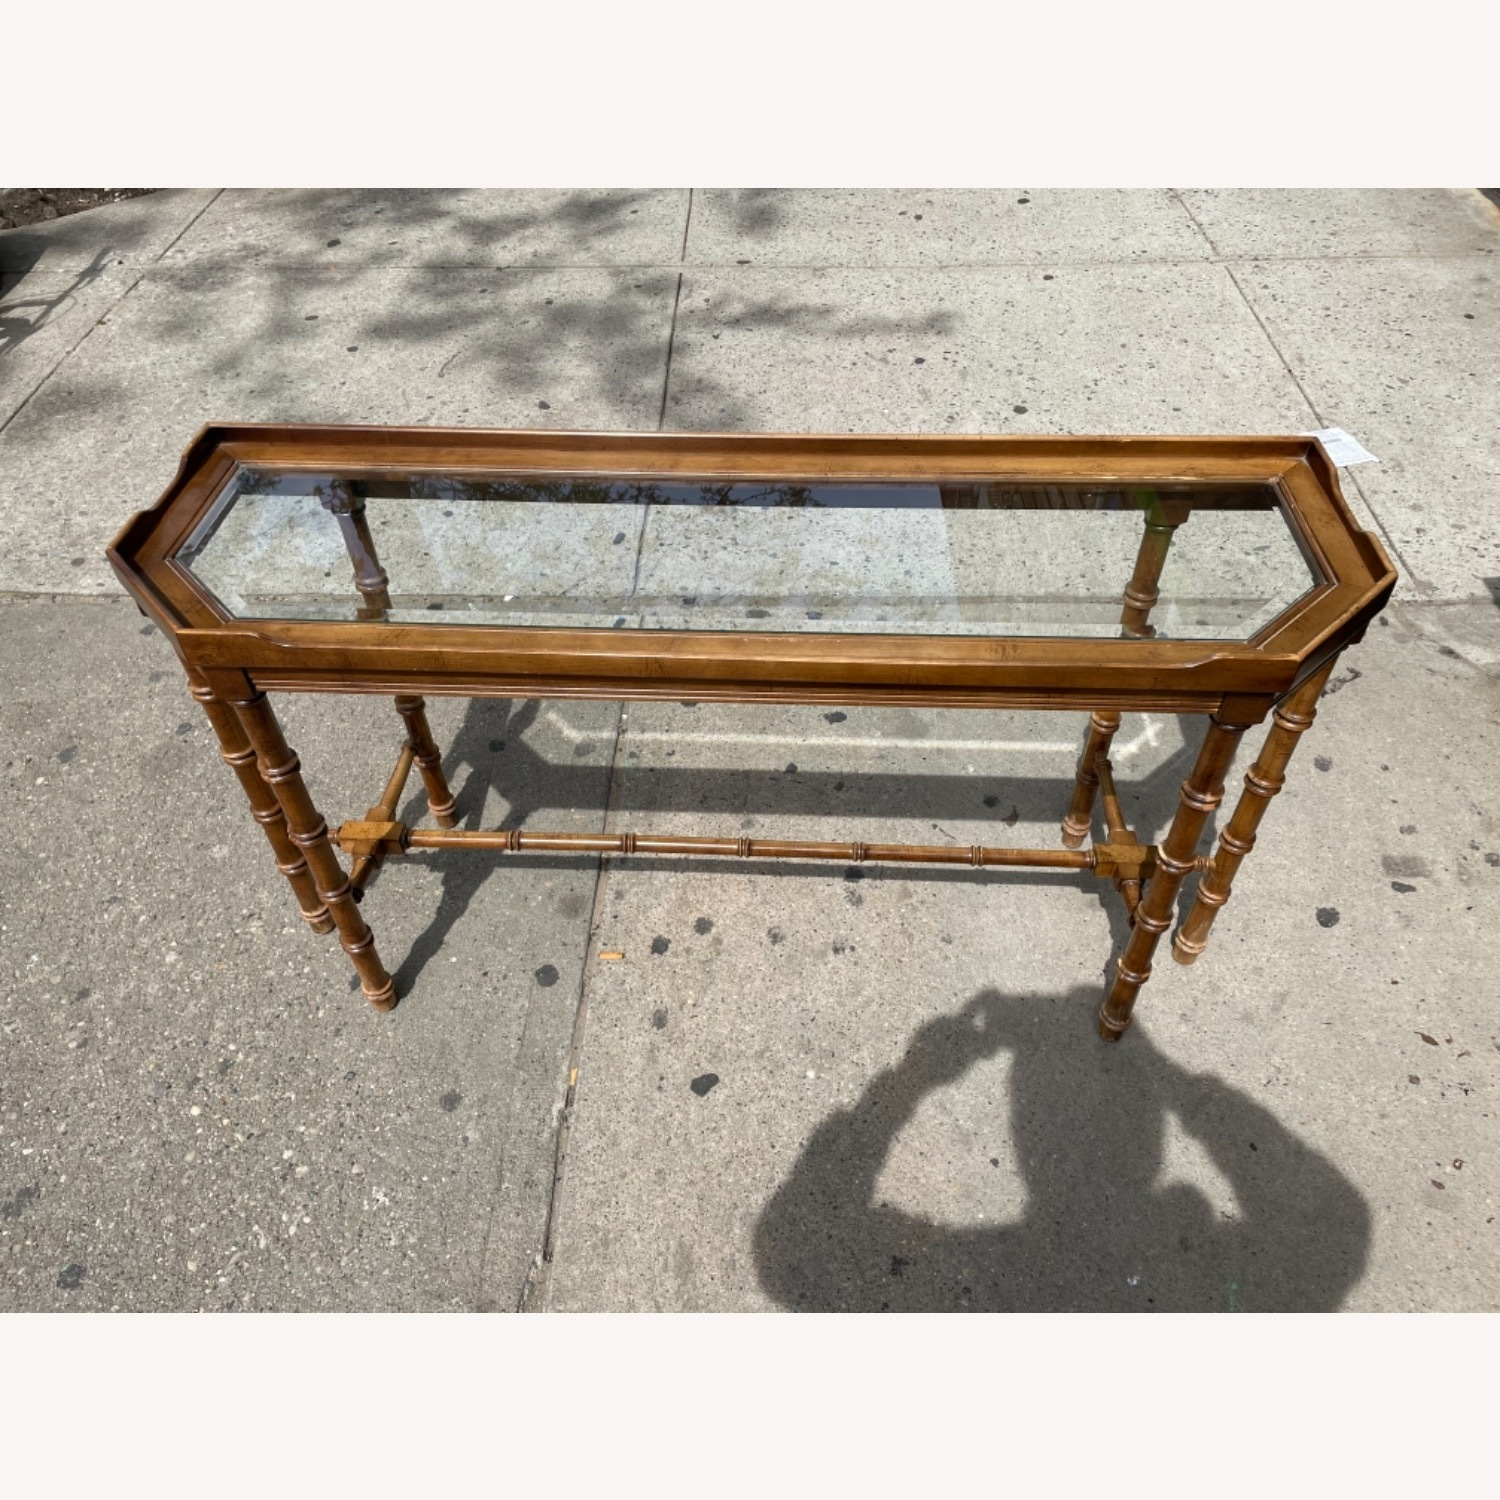 Lane 1970s Console Table w/ Beveled Glass Top - image-4